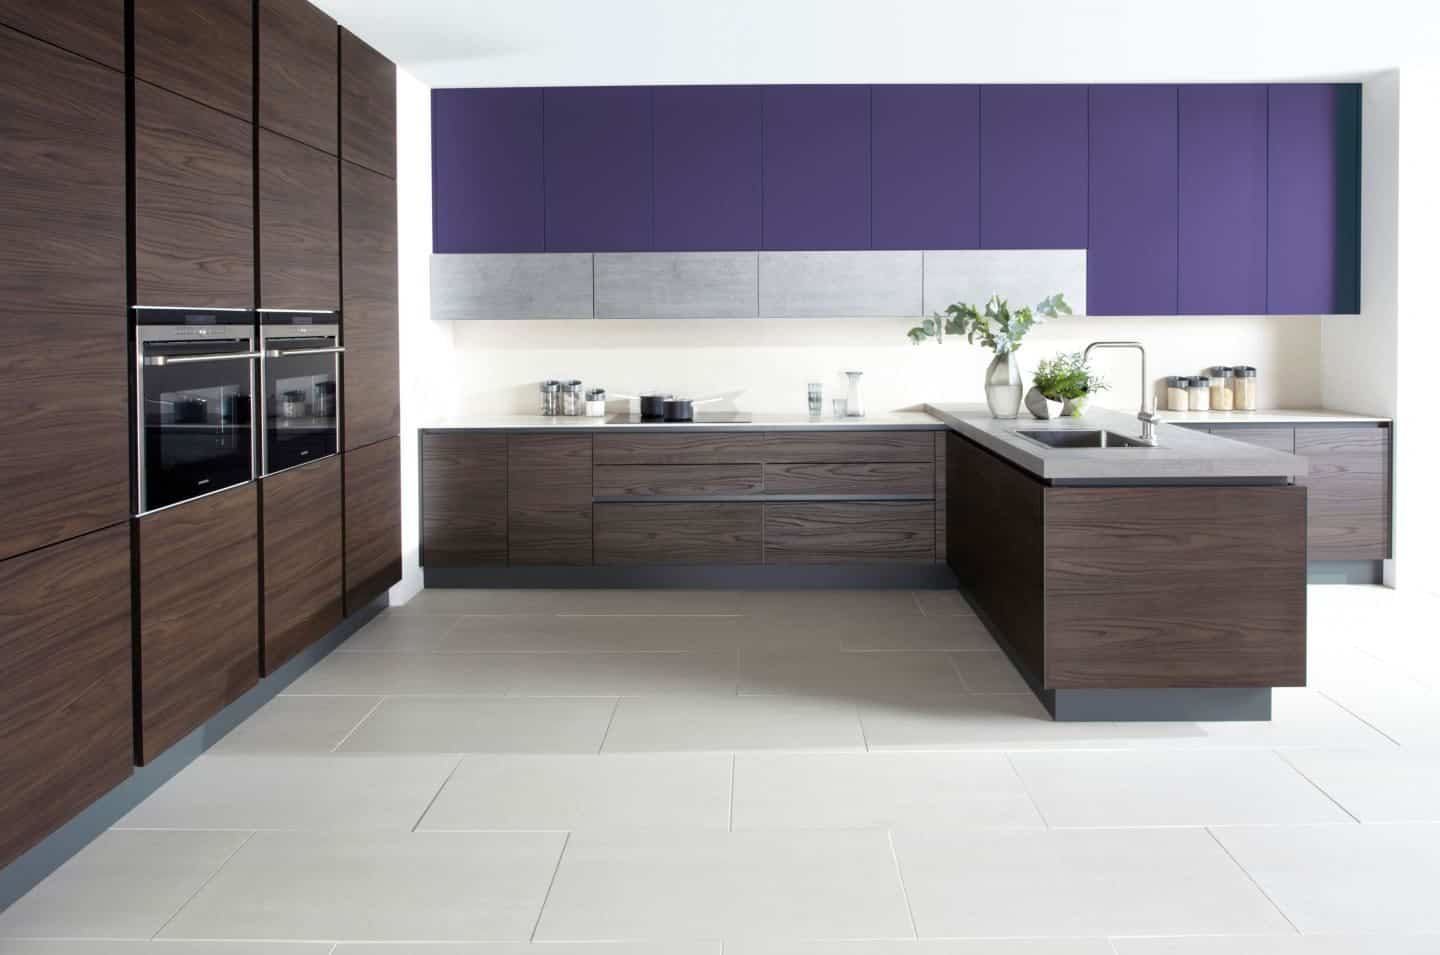 Burbidge Otto Laminate Dark Walnut and Ultra Violet from £7,500